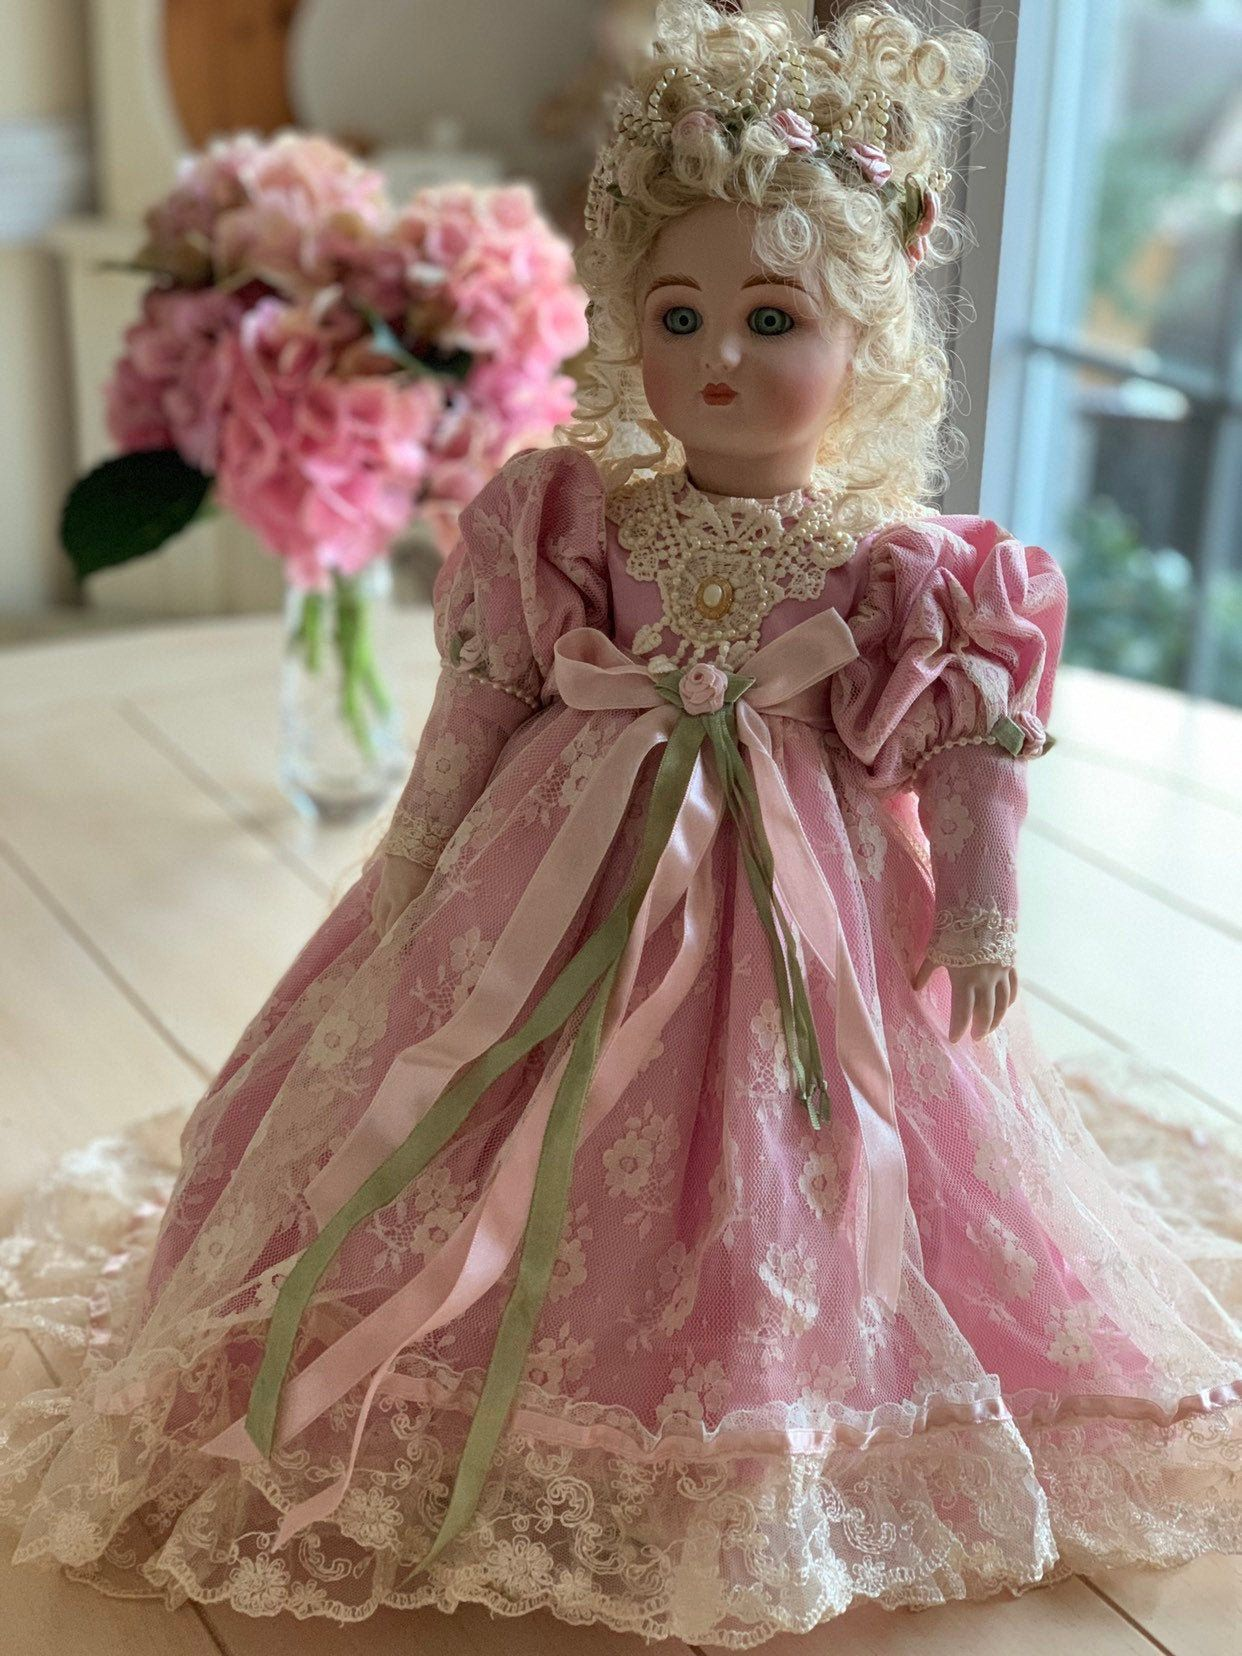 Collectible Doll Porcelain Doll Victorian Style Doll Ribbon Lace Roses Mauve #dollvictoriandressstyles Collectible Doll Porcelain Doll  Victorian Style Doll Ribbon Lace Roses Mauve #dollvictoriandressstyles Collectible Doll Porcelain Doll Victorian Style Doll Ribbon Lace Roses Mauve #dollvictoriandressstyles Collectible Doll Porcelain Doll  Victorian Style Doll Ribbon Lace Roses Mauve #dollvictoriandressstyles